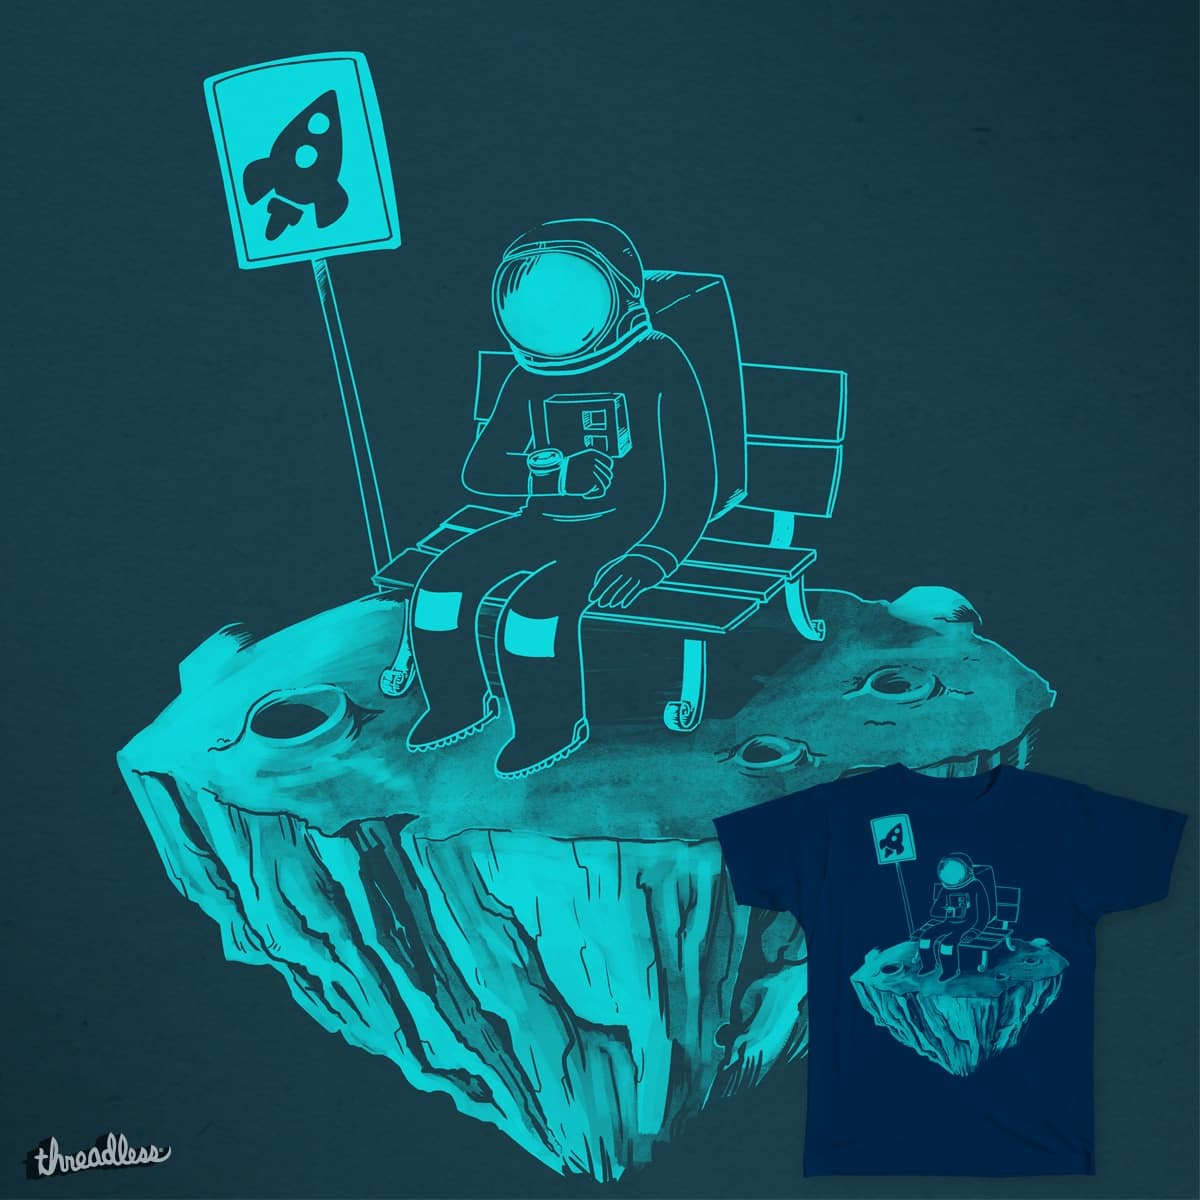 Waiting for the Bus by exeivier on Threadless